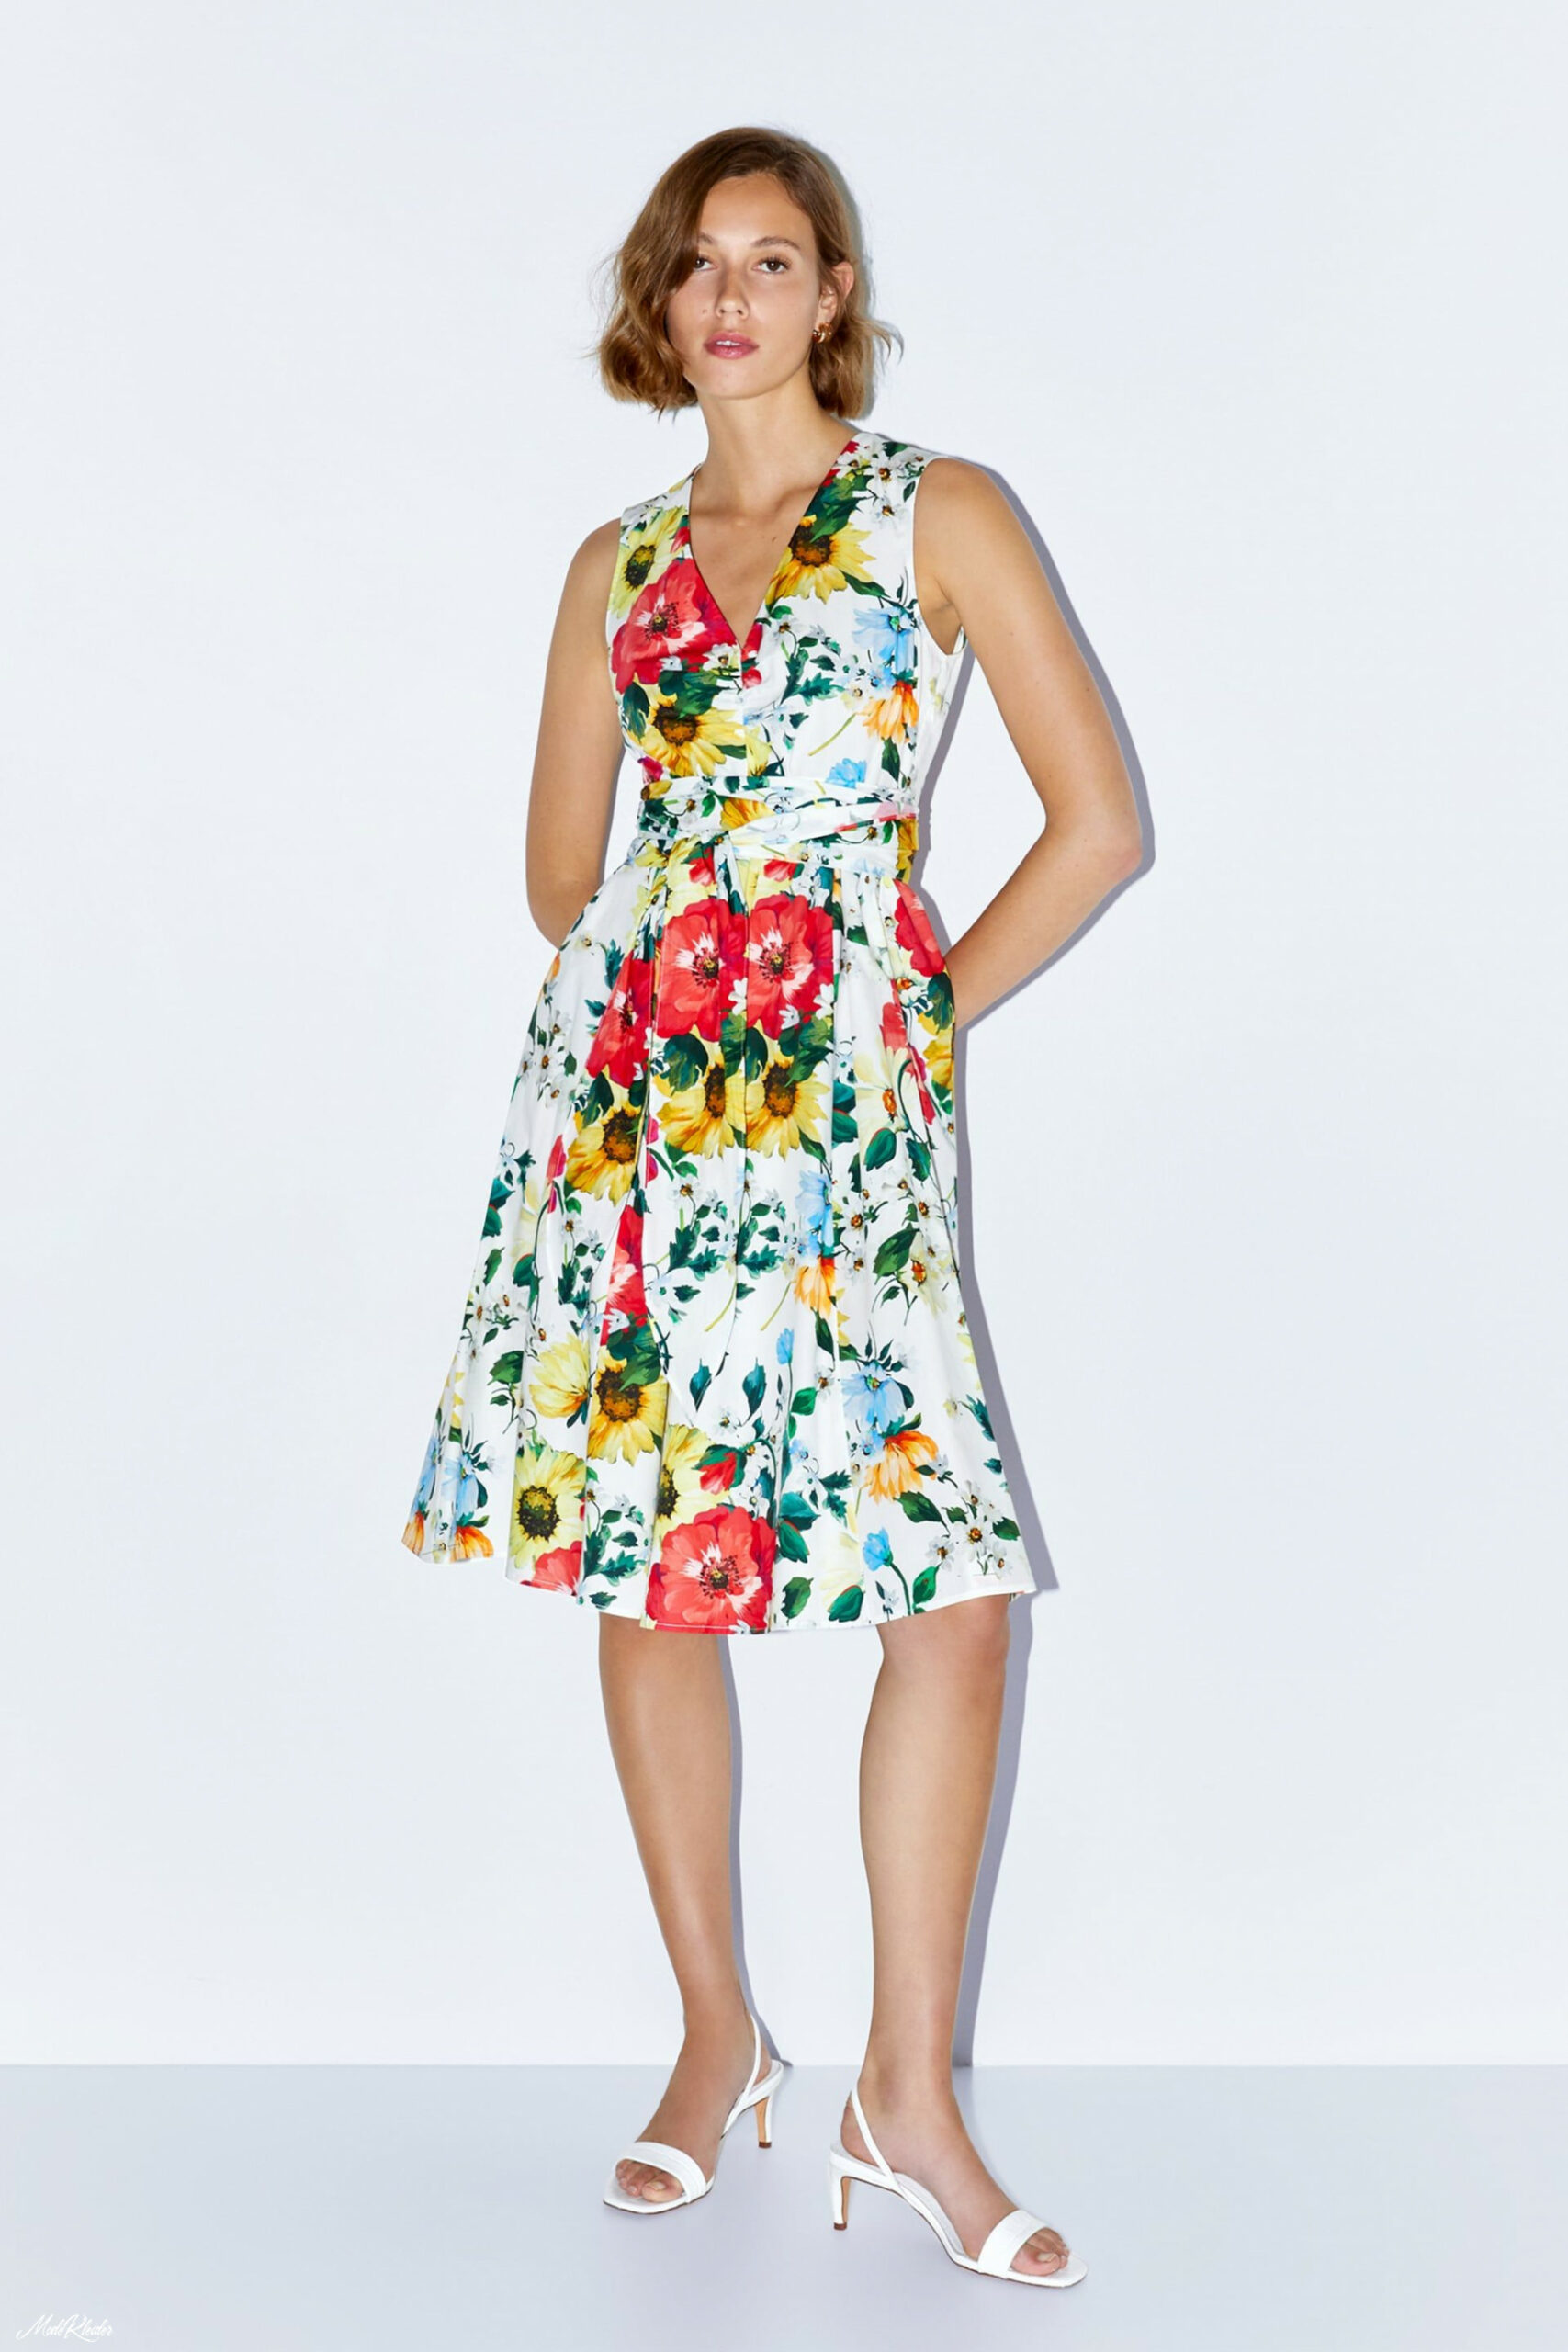 floral print dress dresses, floral print dress, fashion